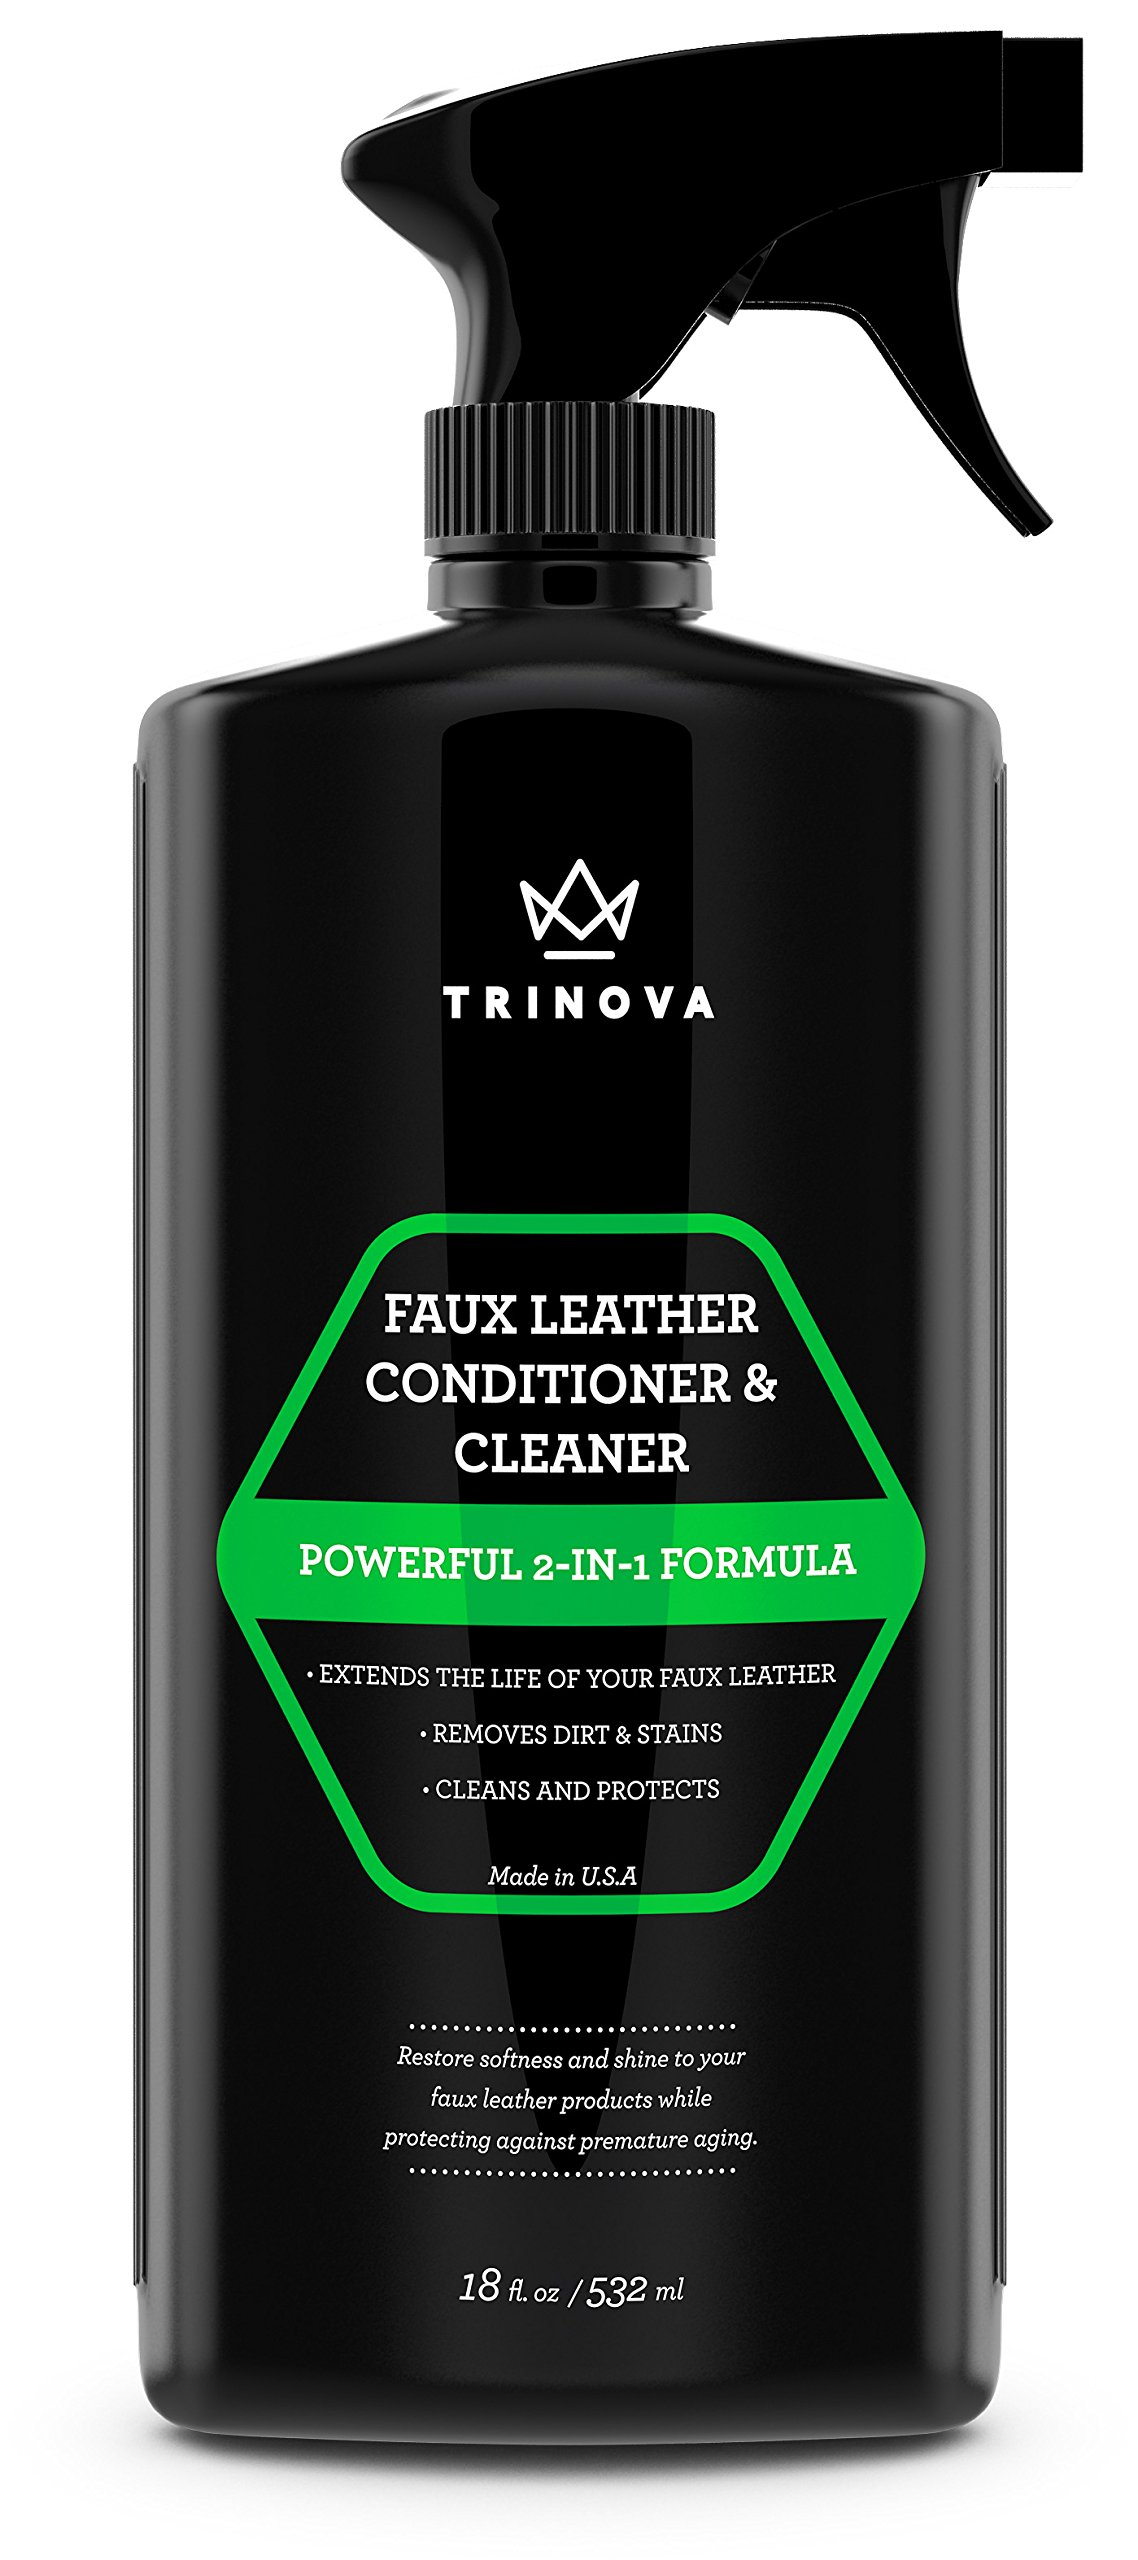 TriNova Vinyl and Faux Leather Cleaner & Conditioner - Keep Seats, Jackets, Vinyl, Handbags, Sofas, Couches, Shoes, Boots & More Looking New